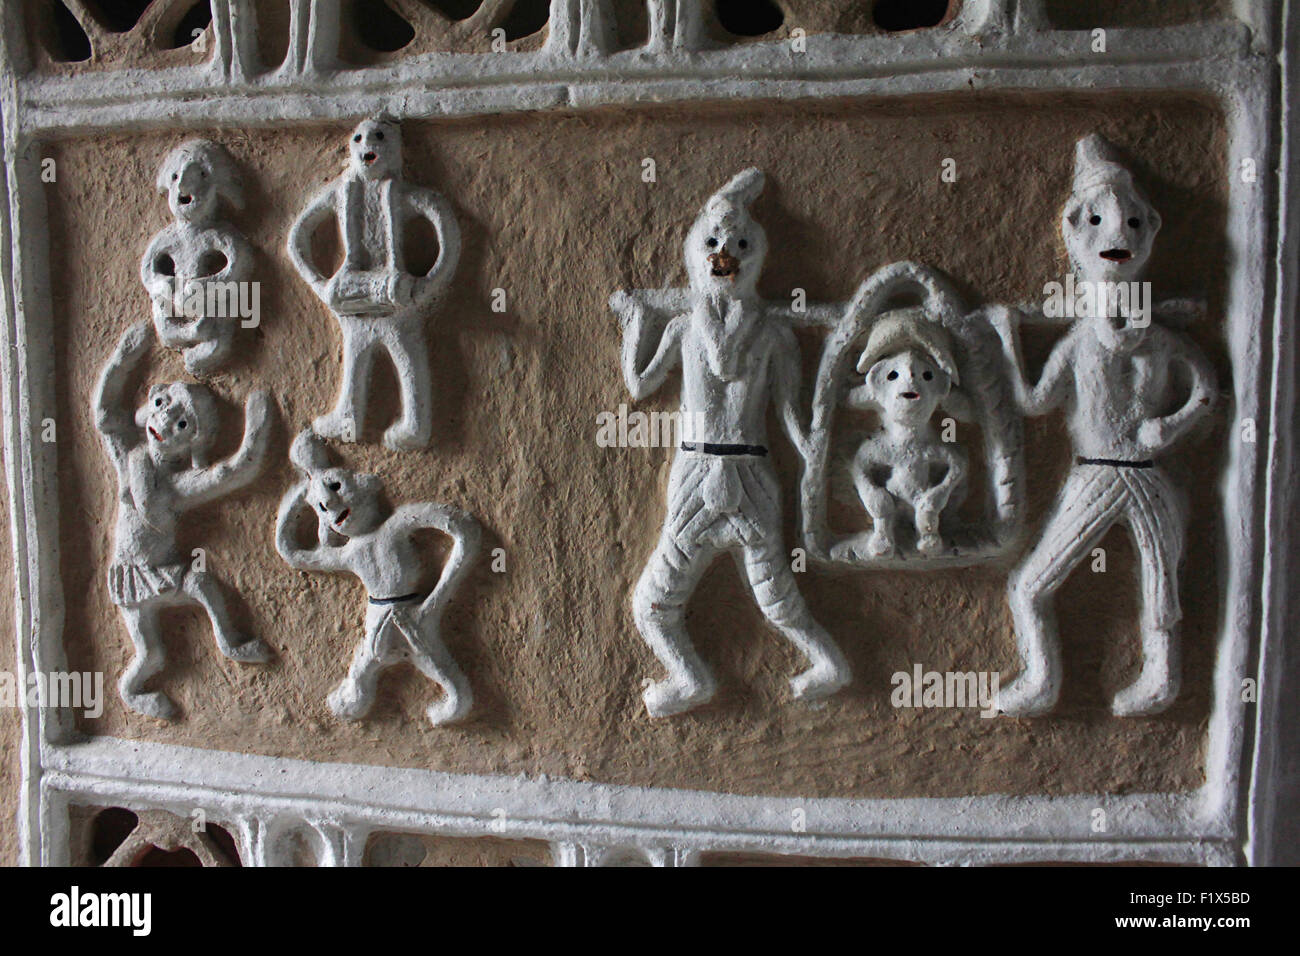 Gond Tribal art, Bhopal, Madhya Pradesh, India - Stock Image